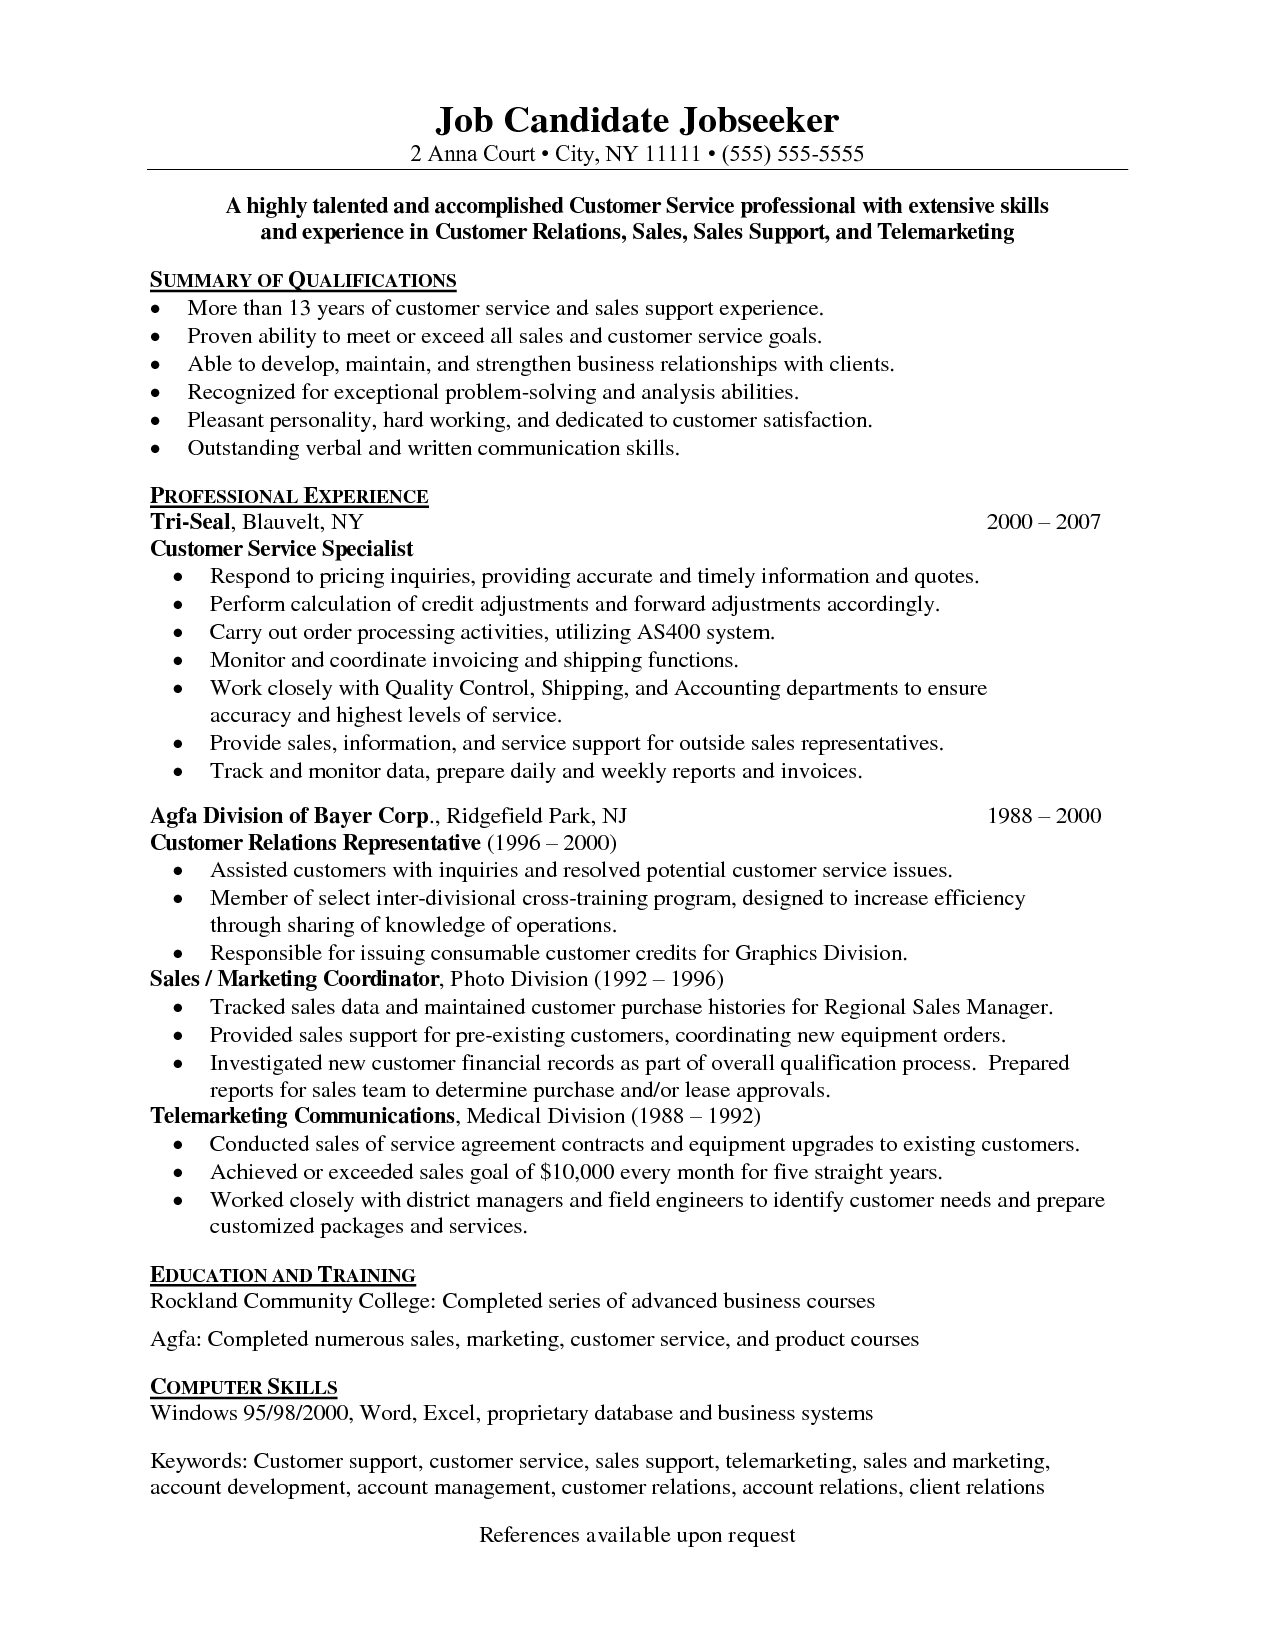 Picnictoimpeachus  Outstanding Customer Service Resume Format  Roiinvestingcom With Exciting Customer Service Resume Format  With Awesome Example Of Reference Page For Resume Also It Analyst Resume In Addition Librarian Resume Sample And Resume For Graduate Student As Well As Put High School On Resume Additionally Fpa Resume From Roiinvestingcom With Picnictoimpeachus  Exciting Customer Service Resume Format  Roiinvestingcom With Awesome Customer Service Resume Format  And Outstanding Example Of Reference Page For Resume Also It Analyst Resume In Addition Librarian Resume Sample From Roiinvestingcom